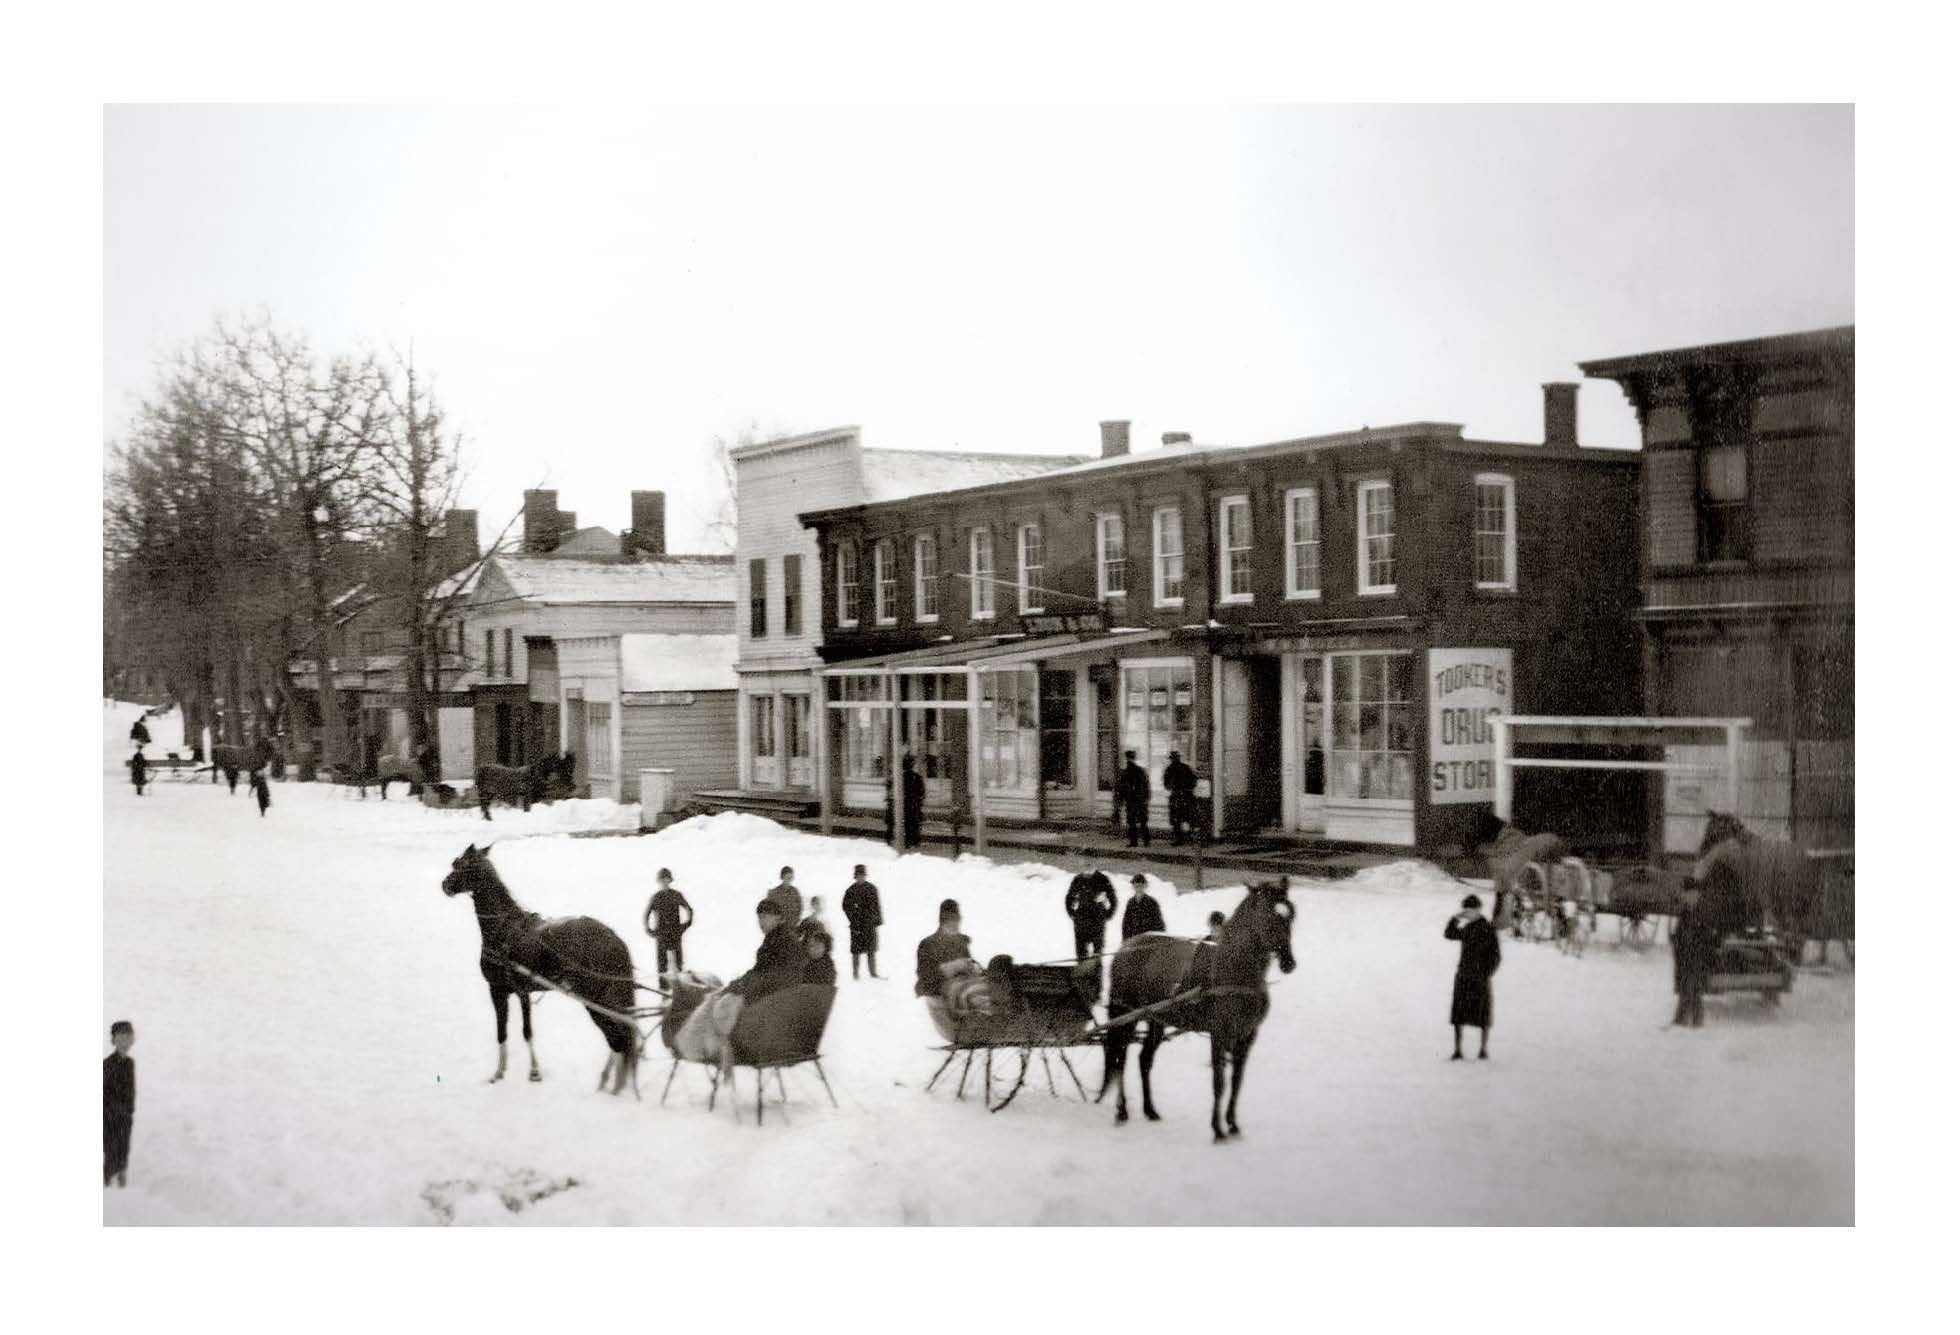 William Wallace Tooker's photo of Main Street, Sag Harbor in the snow, c. 1882. The Tooker Drugstore can be seen in the image.